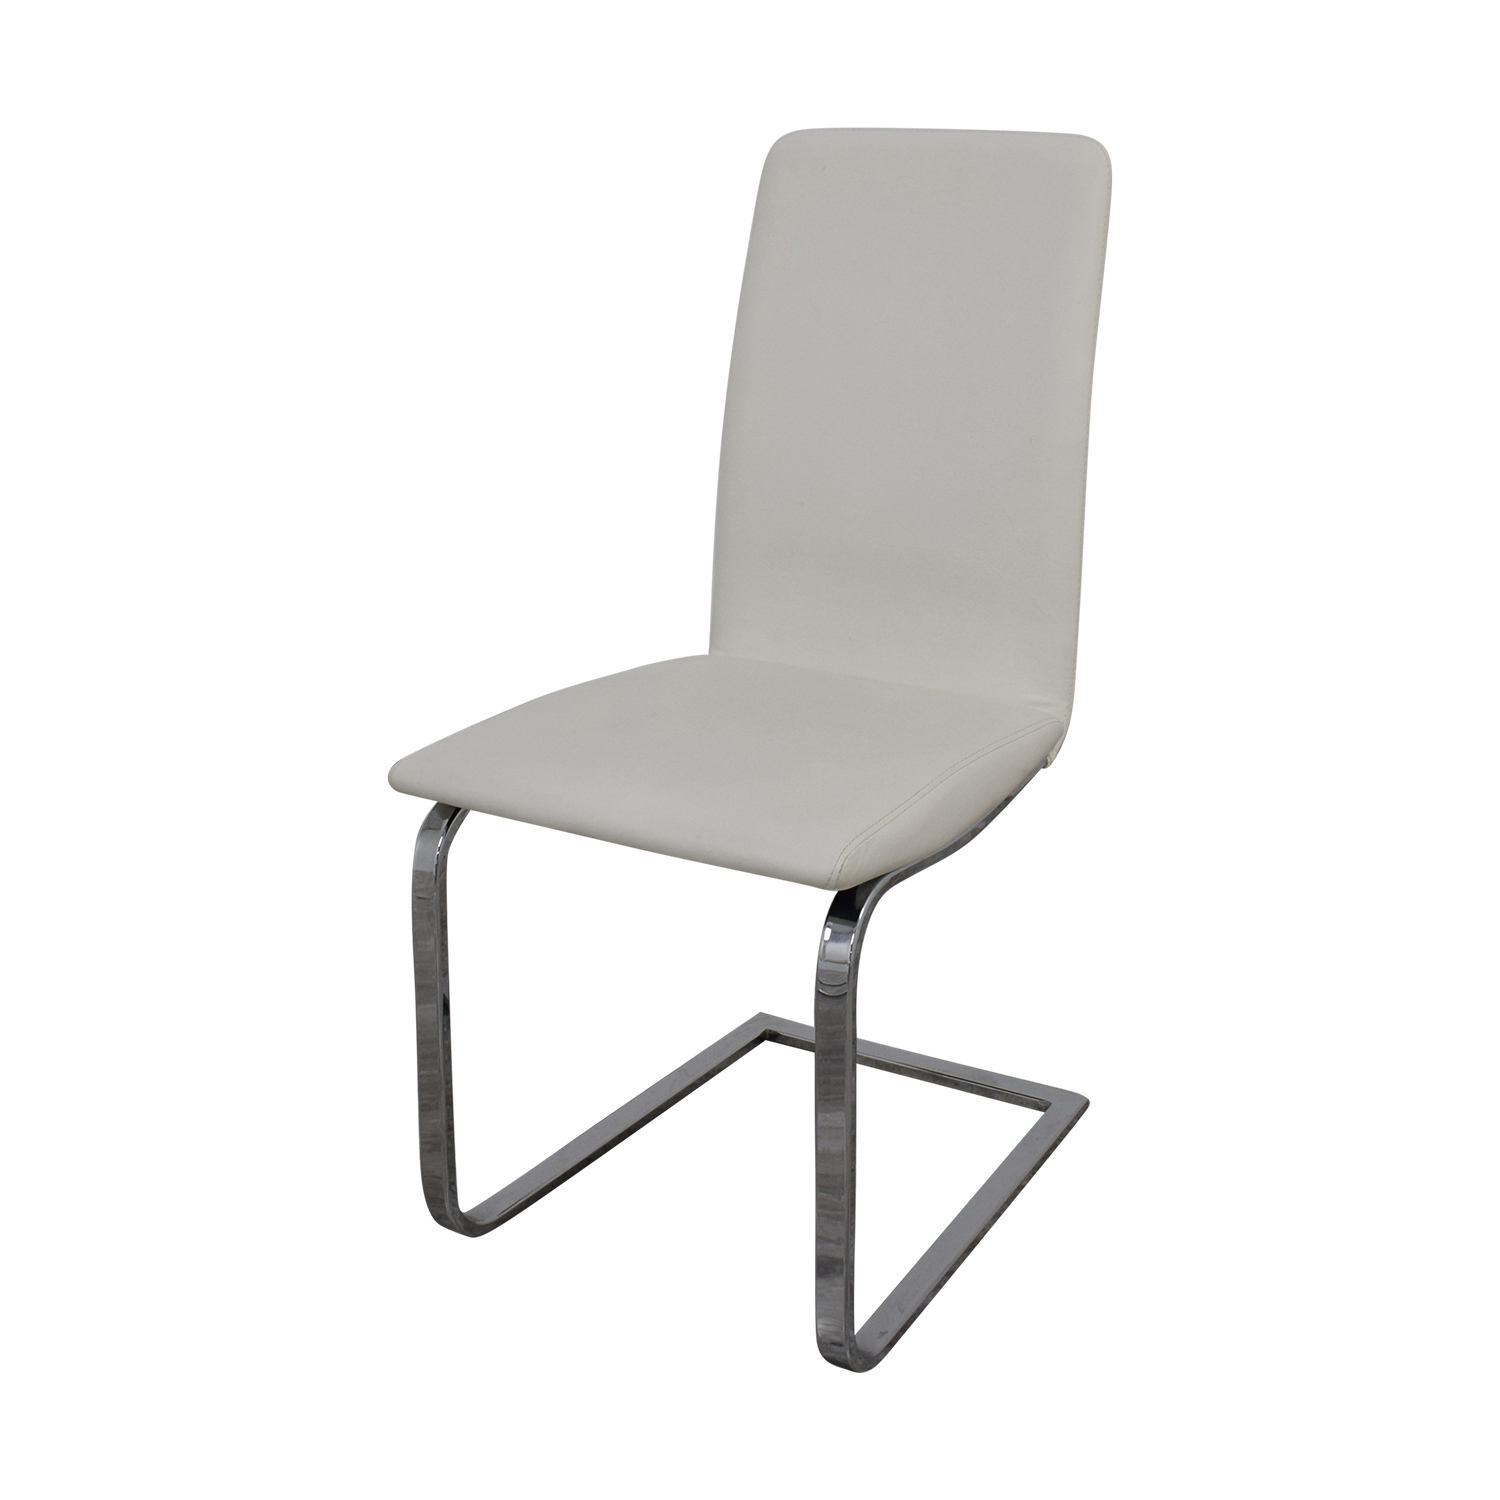 Overstock Overstock Dining Chairs used